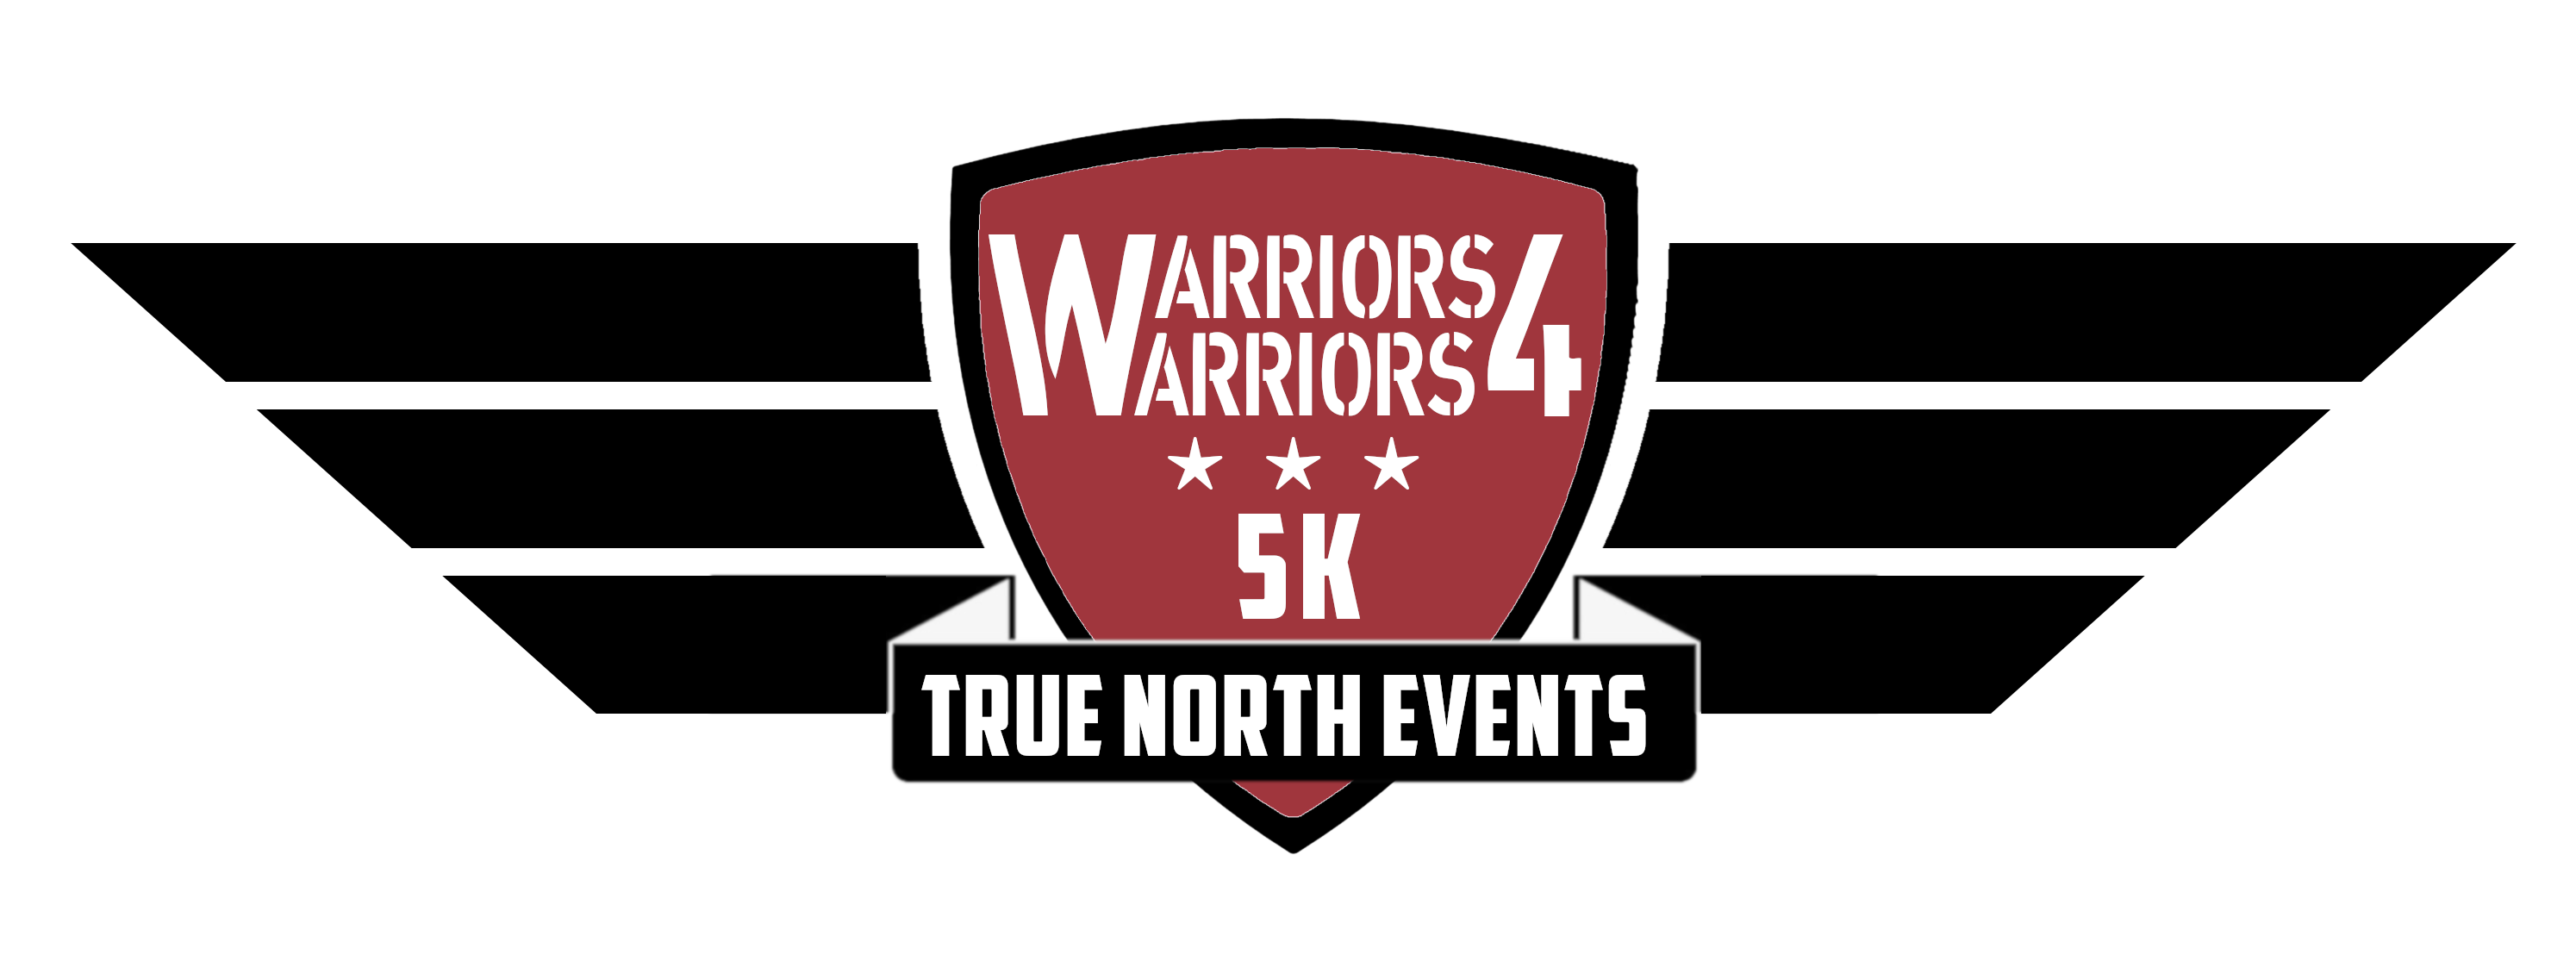 Warriors 4 Warriors 5K - July 31, 2021